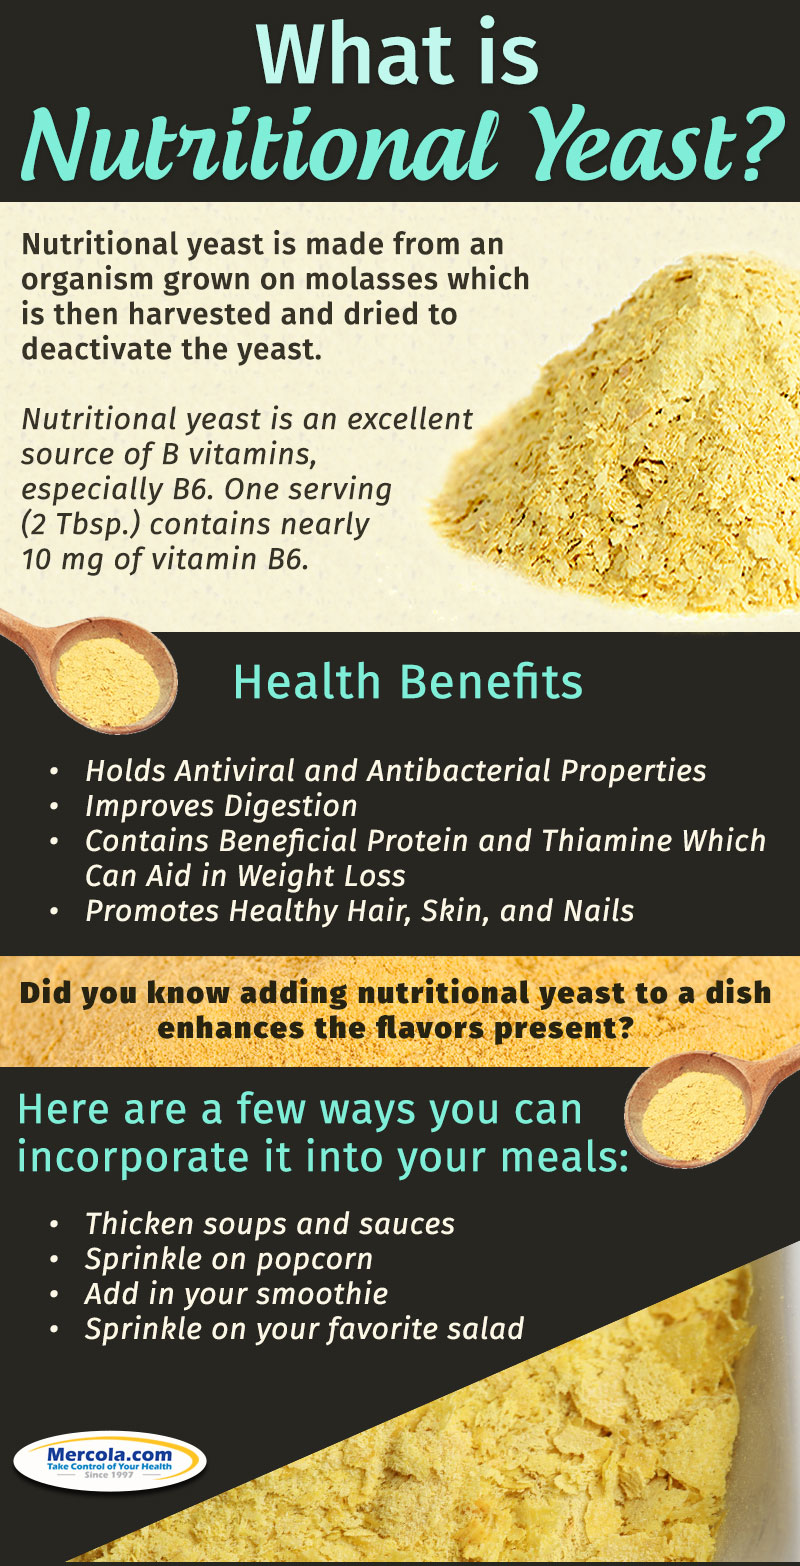 Nutritional Yeast: The Ultimate Health-Booster Infographic